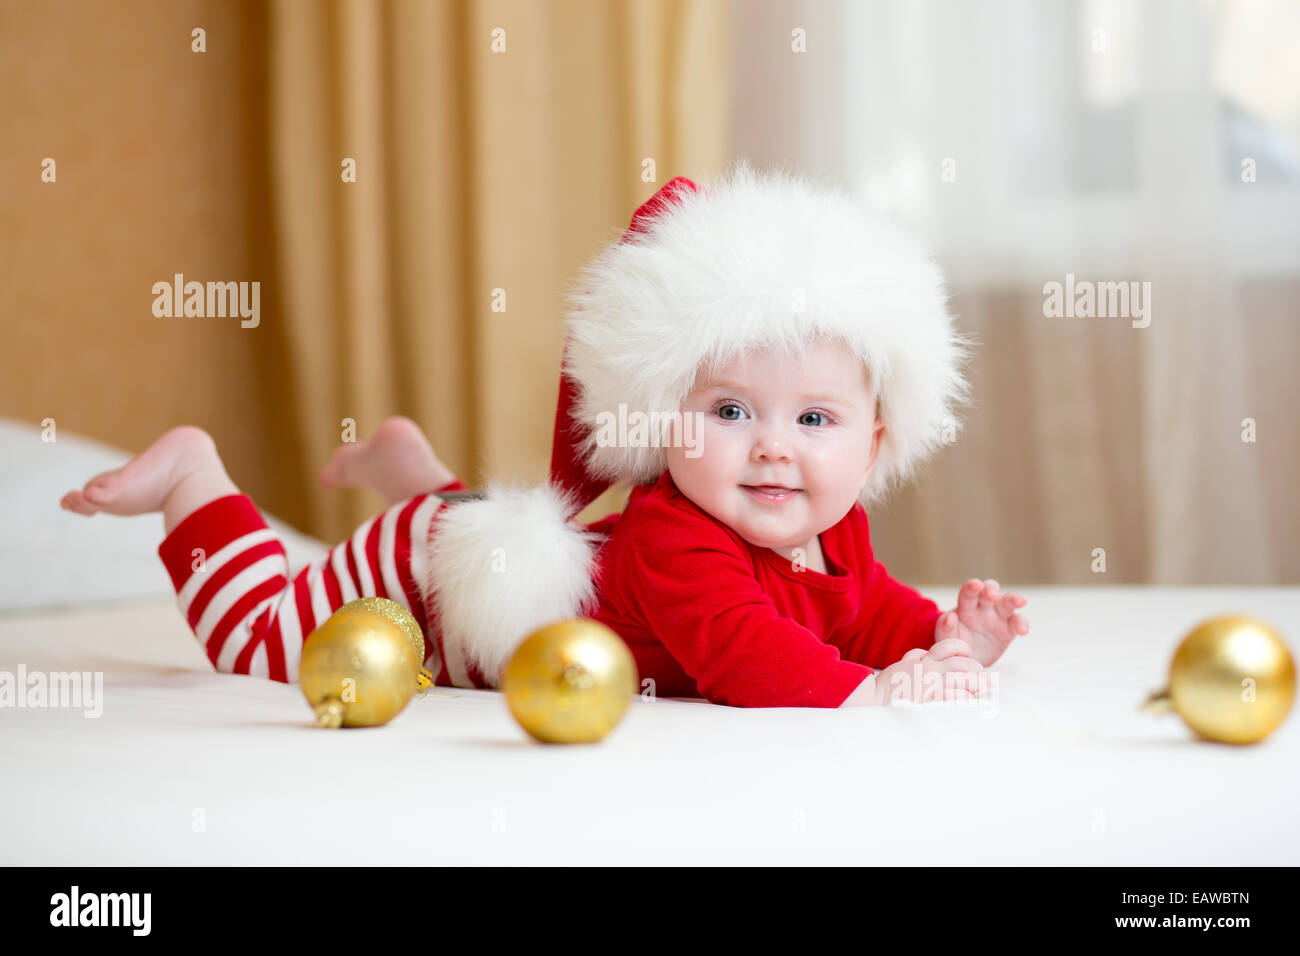 Cute Baby Girl Weared Christmas Clothes Stock Photo 75546149 Alamy